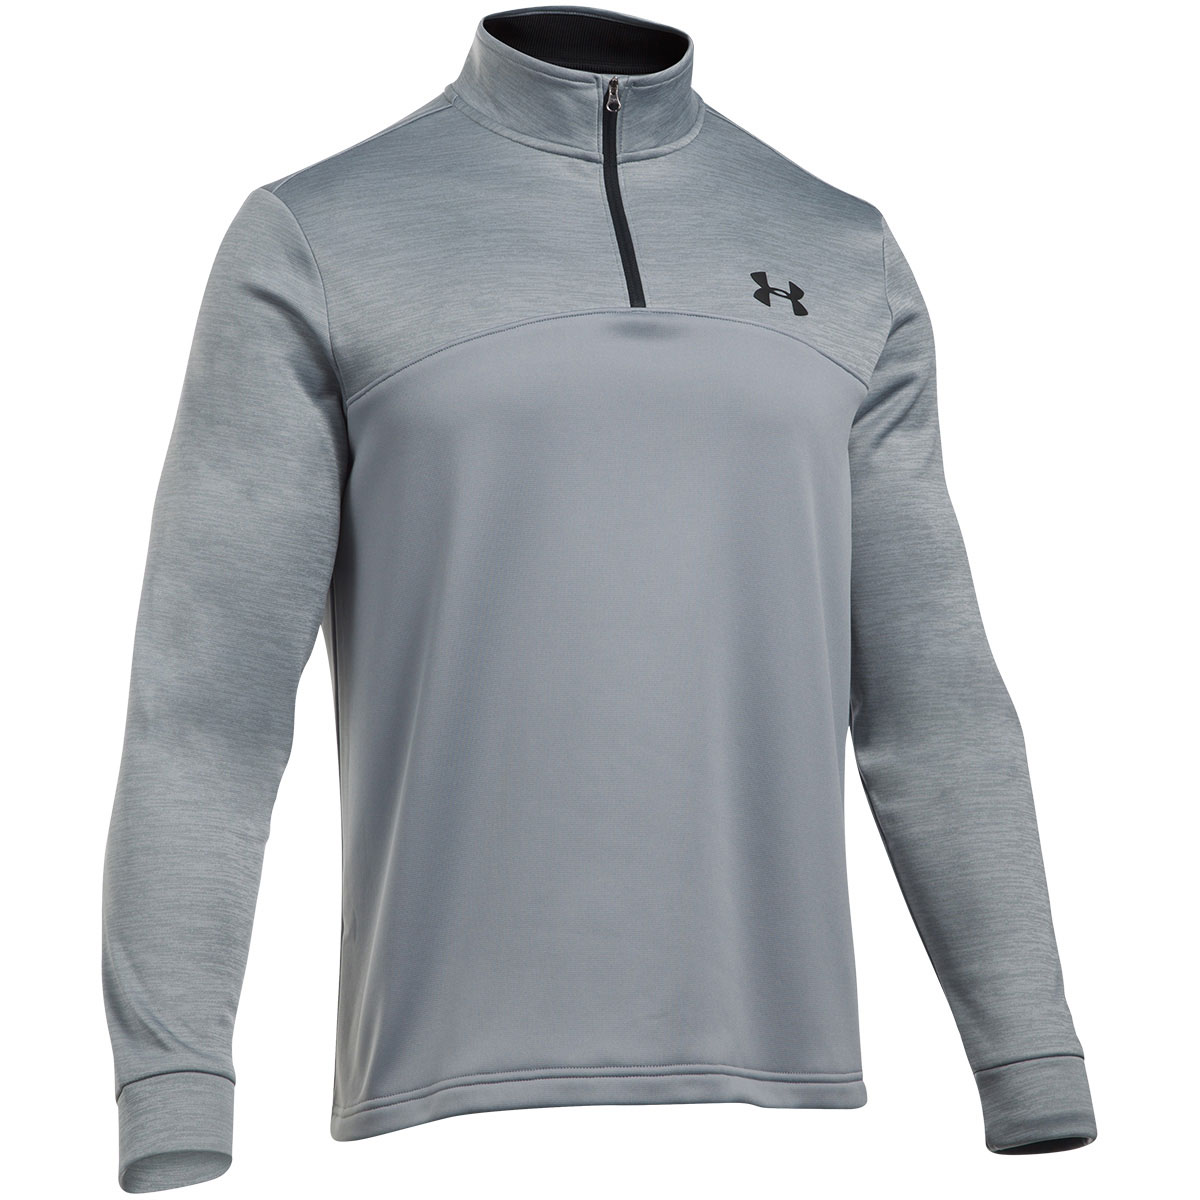 Under armour mens 2018 armour fleece icon 1 4 zip pullover for Flannel shirt under sweater